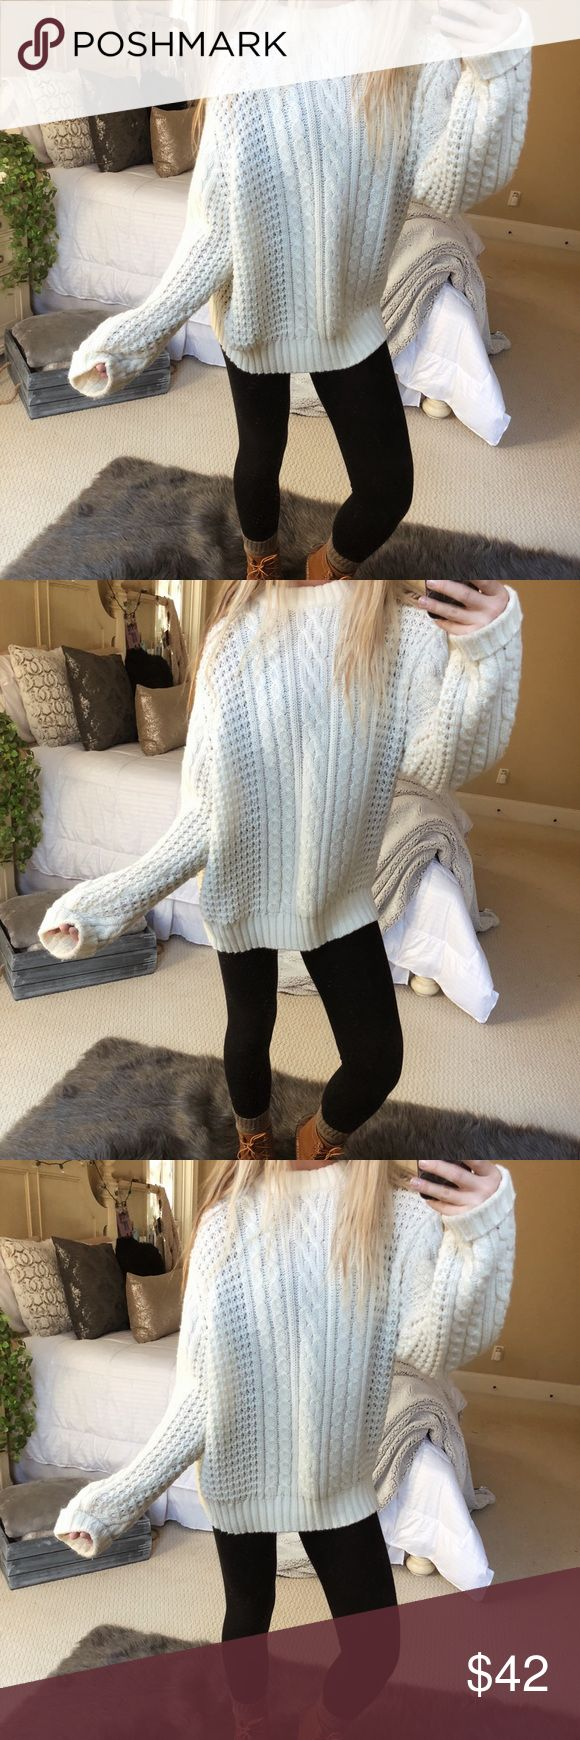 chunky off-white knit sweater super cozy and plush chunky off-white knit. so incredibly gorgeous and high quality! fits a size medium or large 🍃🌲☕️ — * all offers 100% welcomed + encouraged * bundle for a private discount of at least 20% off  * orders guaranteed to ship within 1-2 days unless stated otherwise * ask me any questions if you ever have any! xo Sweaters